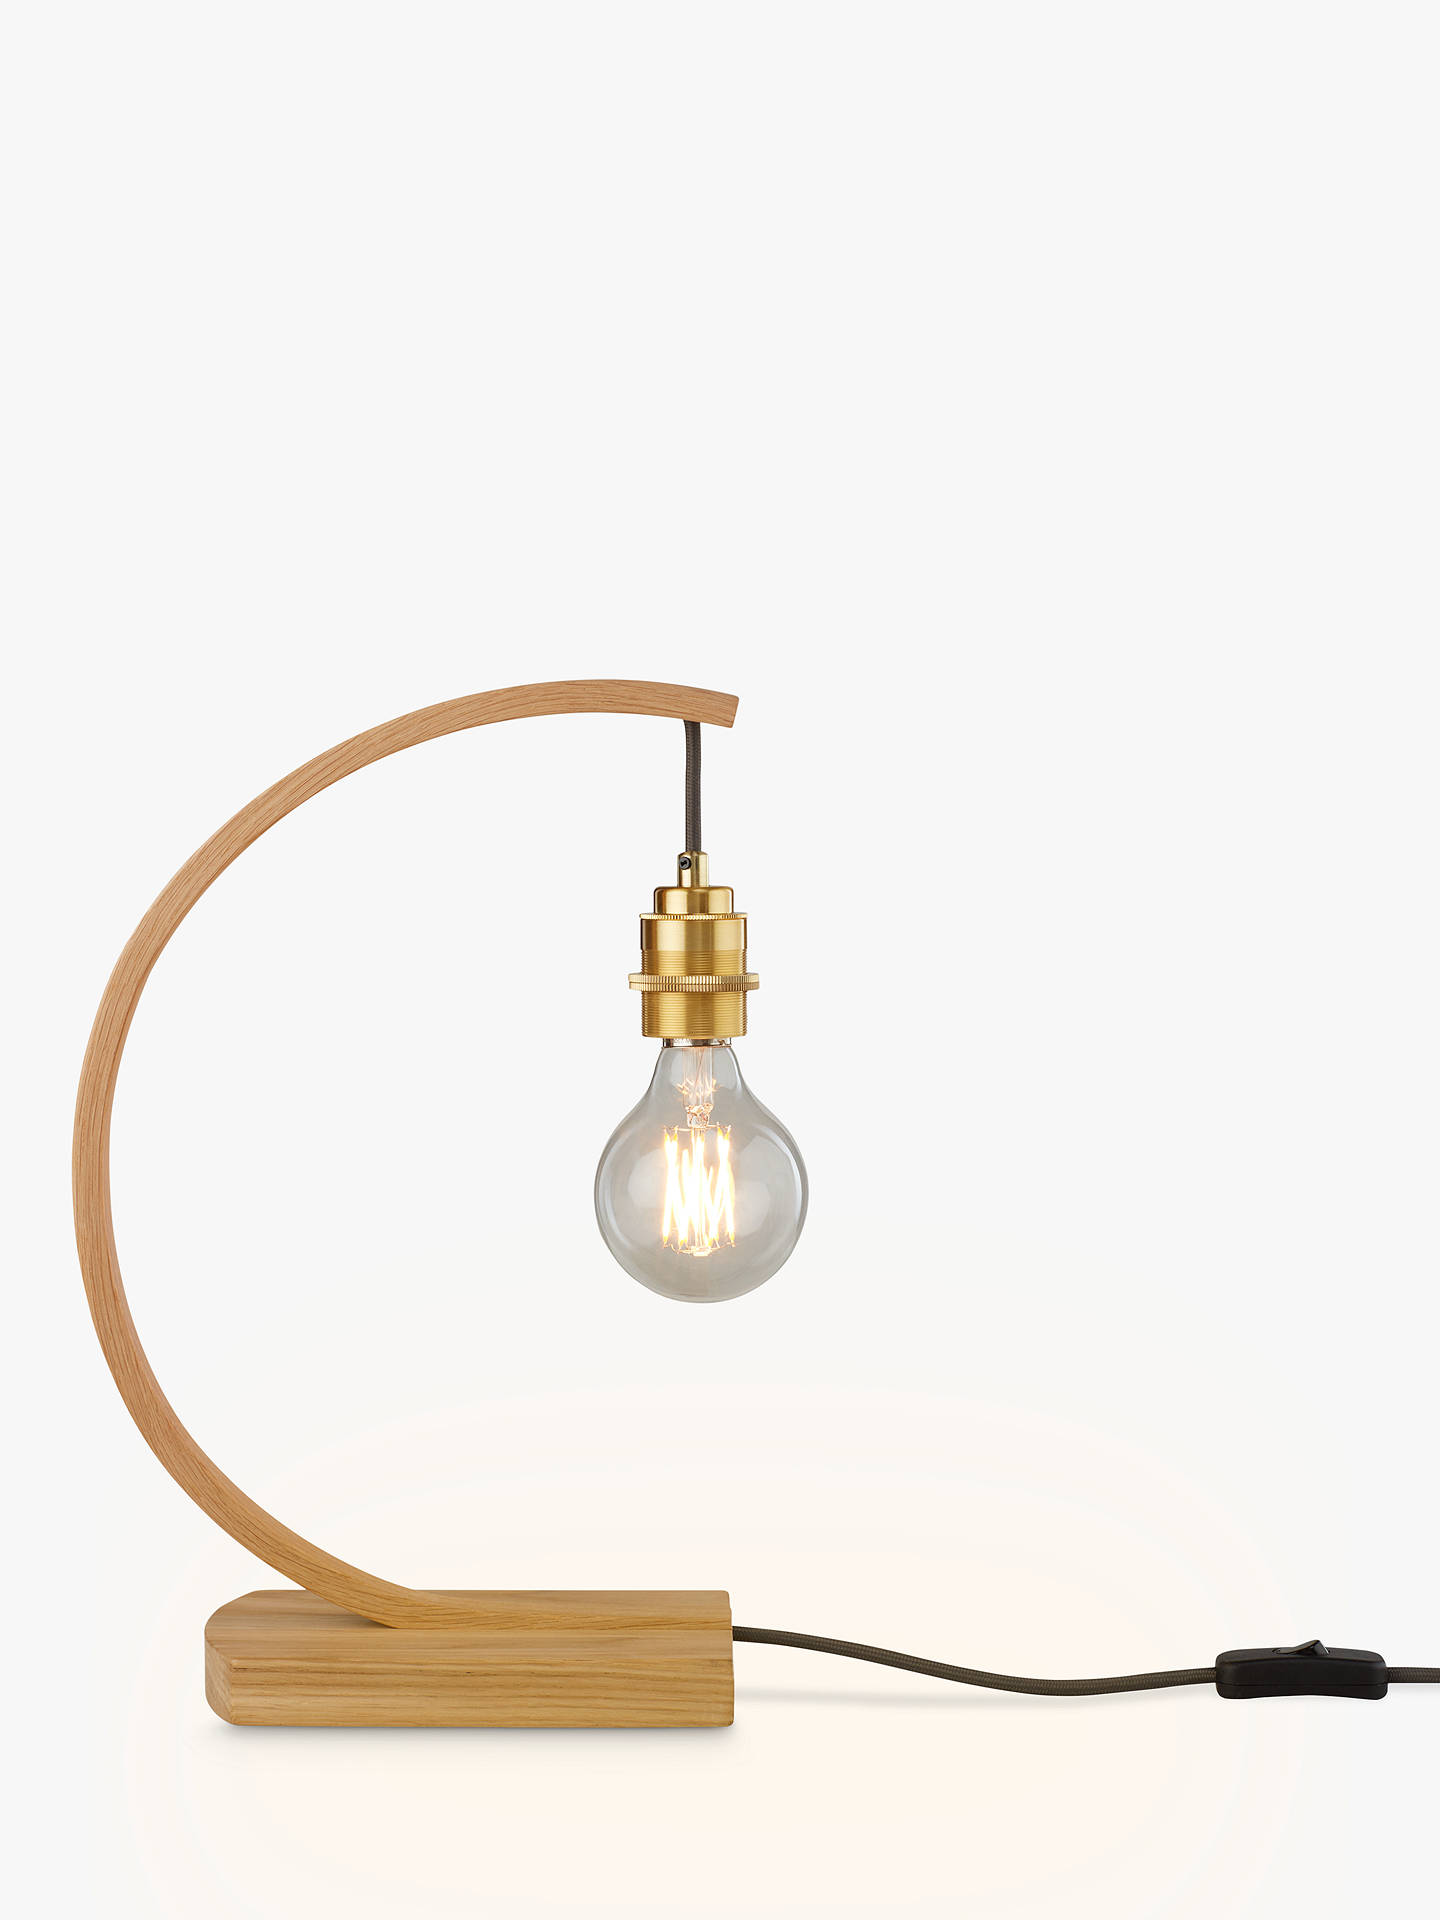 Tom Raffield Stem Table Light, Oak at